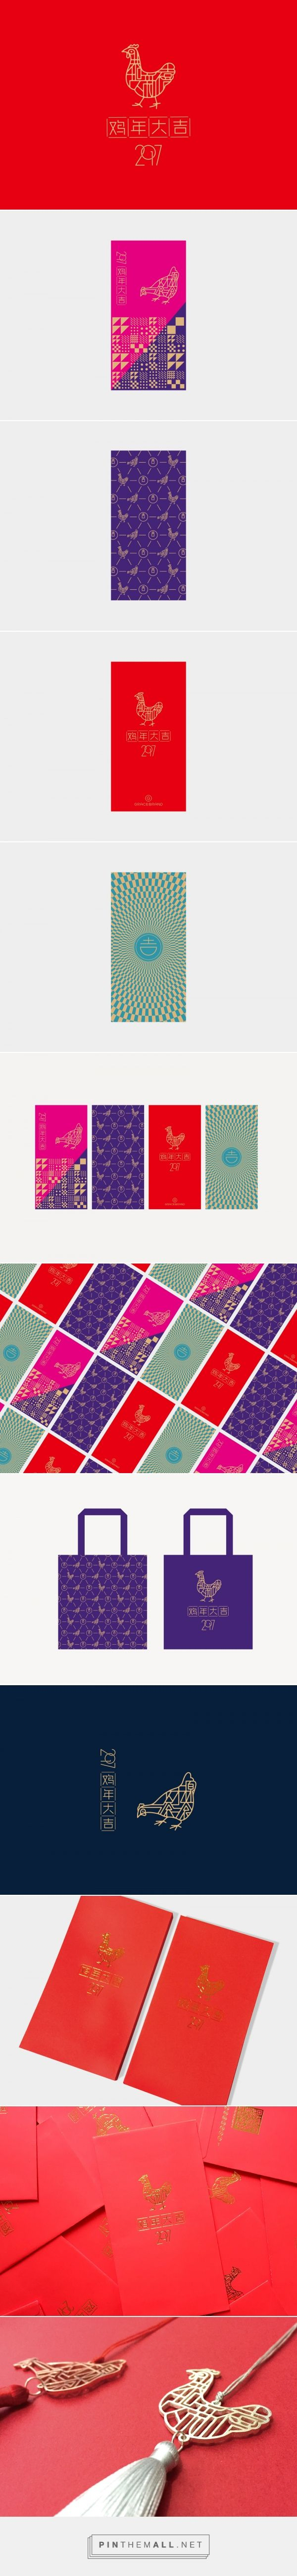 Year Of The Rooster Red Envelopes design by Xiang Hailong - http://www.packagingoftheworld.com/2017/02/year-of-rooster-red-envelopes.html